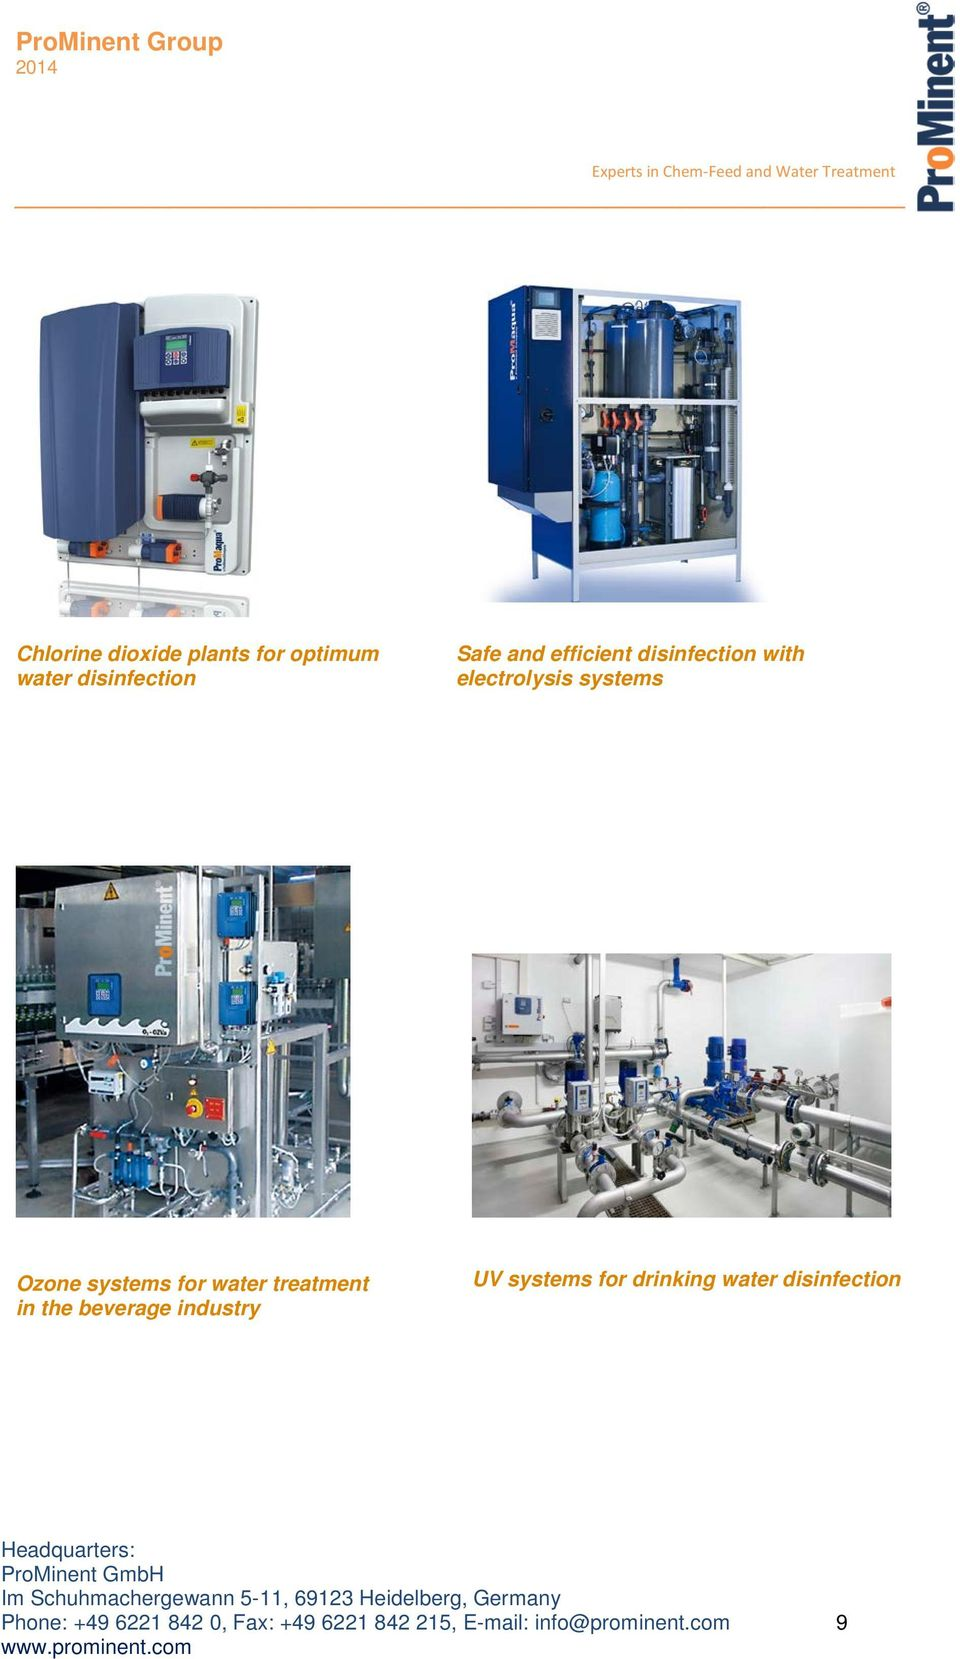 treatment in the beverage industry UV systems for drinking water disinfection